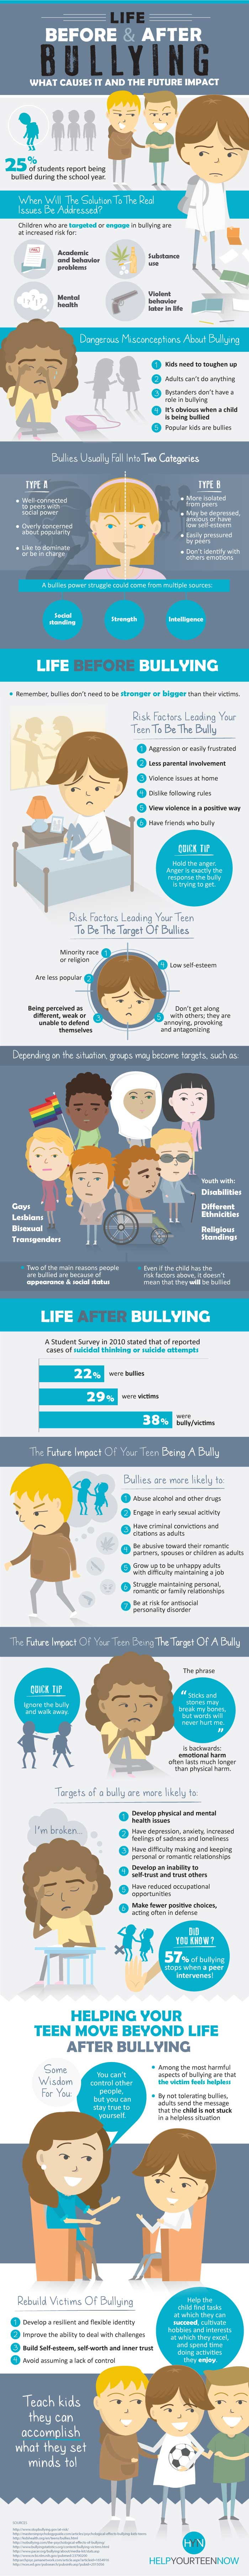 Life-Before-And-After-Bullying-Infographic-What-Causes-It-And-The-Future-Impact